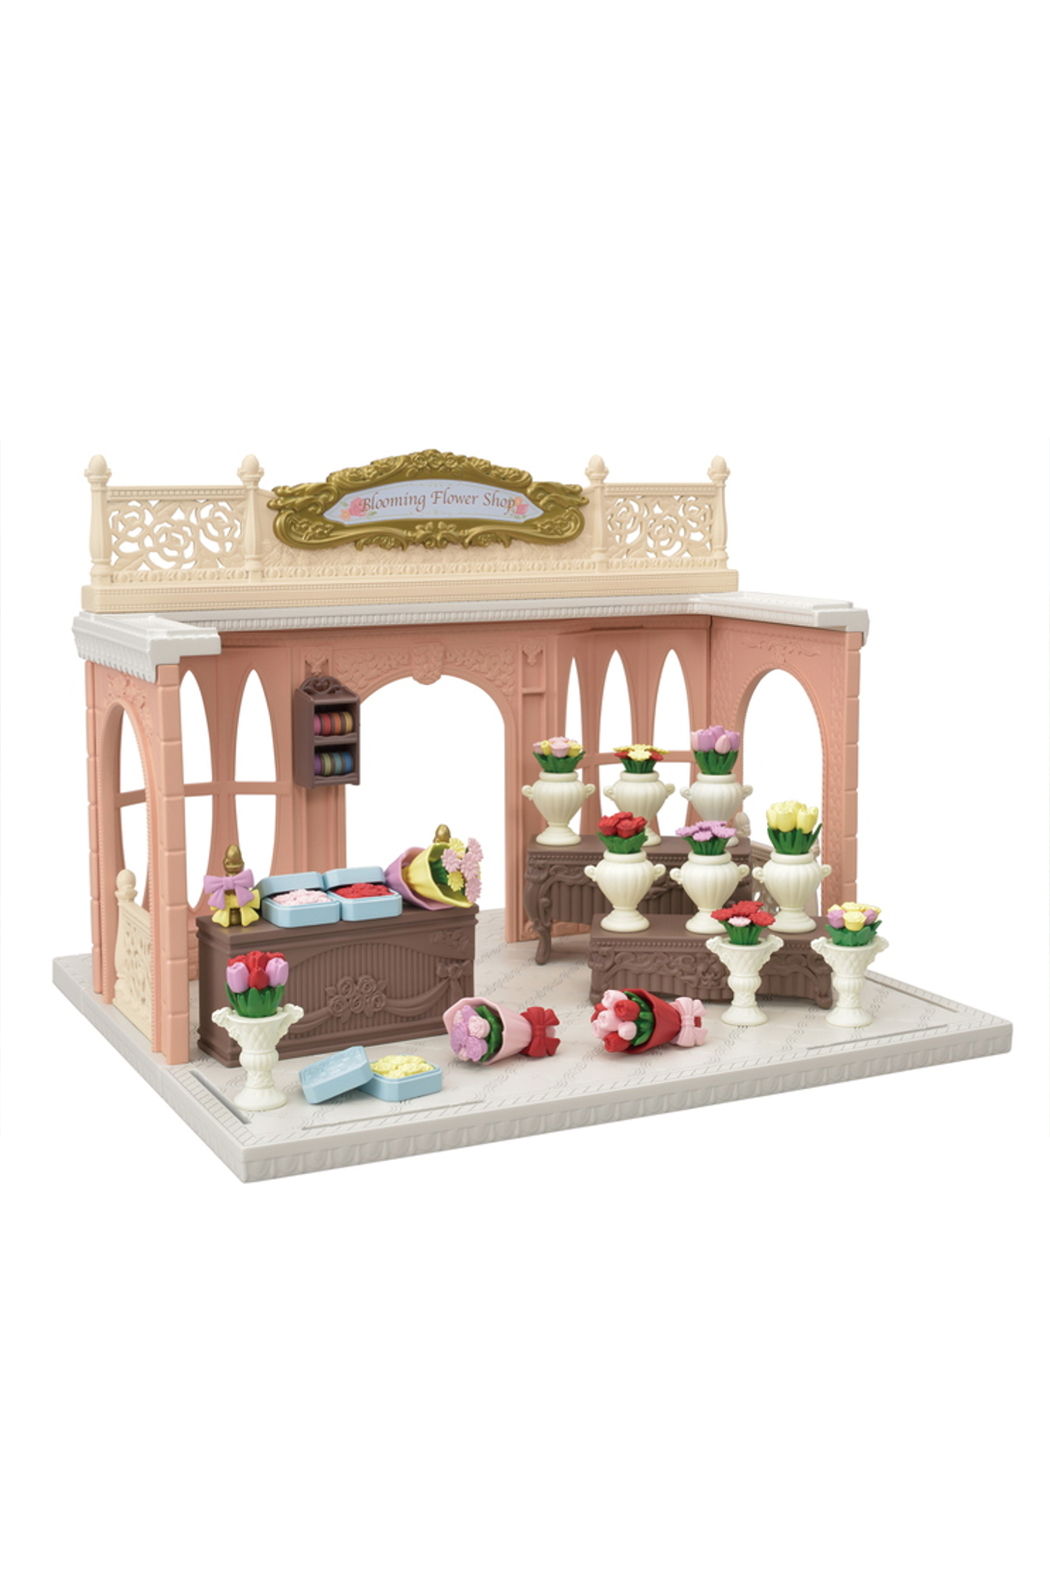 Calico Critters Blooming Flower Shop - Main Image